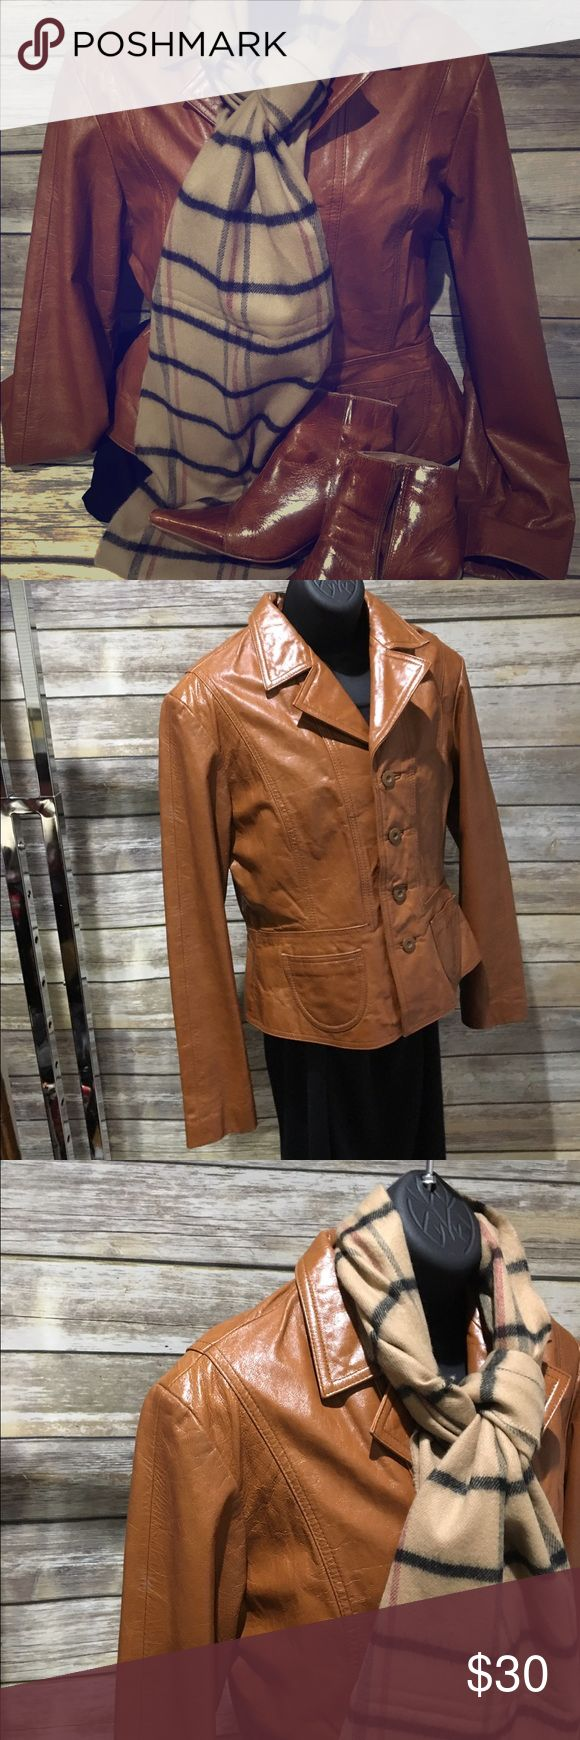 Wilsons leather jacket Cognac leather jacket. No damage, but normal leather wear. Pointed toe boots (size 6.5) included at no additional cost, if interested. Wilsons Leather Jackets & Coats